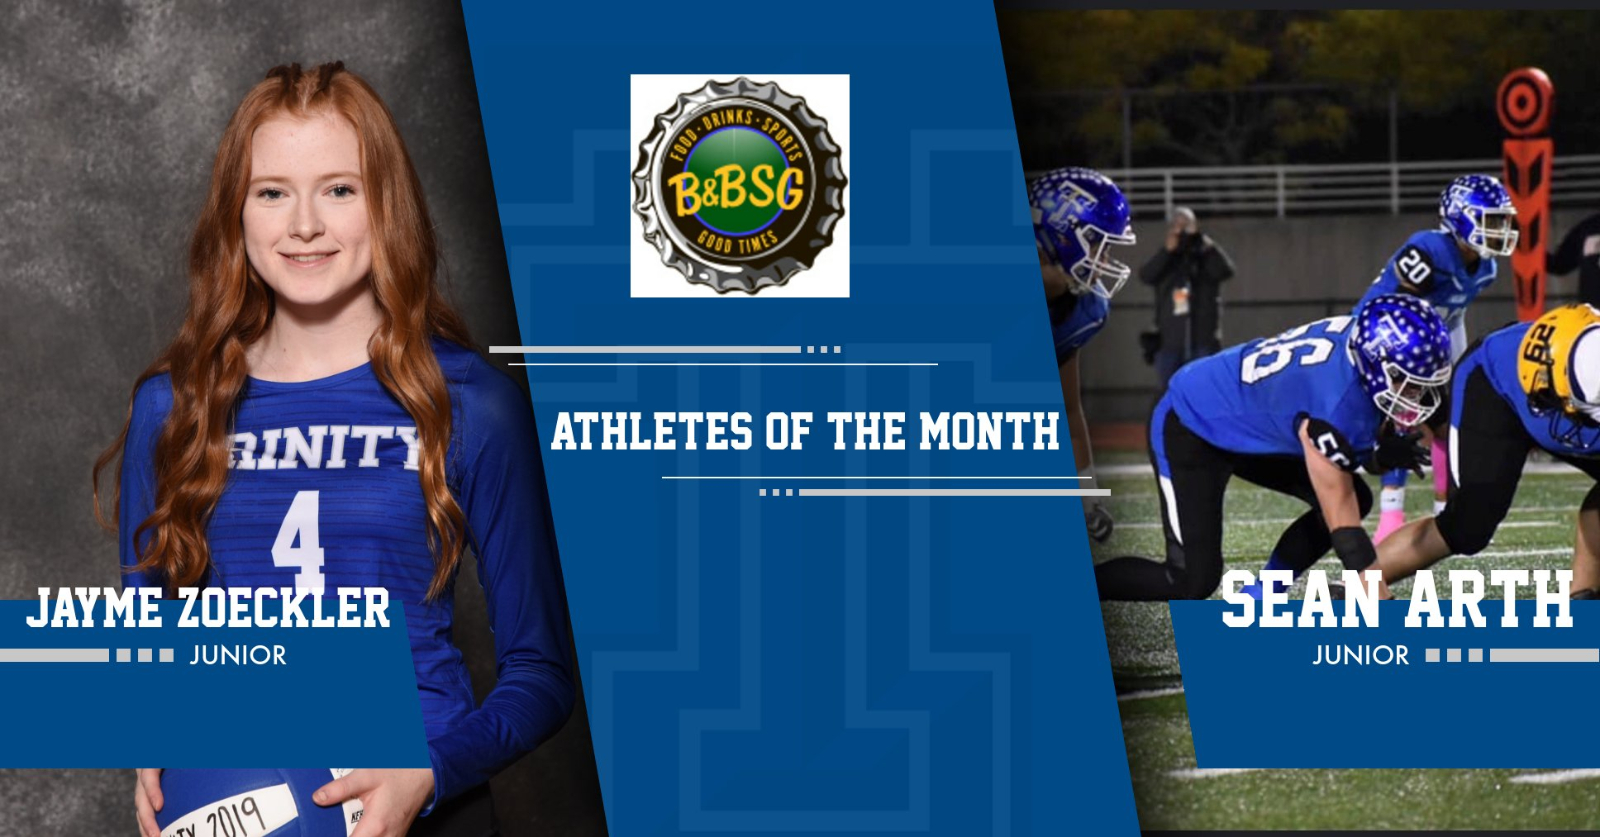 OCTOBER BBSG ATHLETES OF THE MONTH